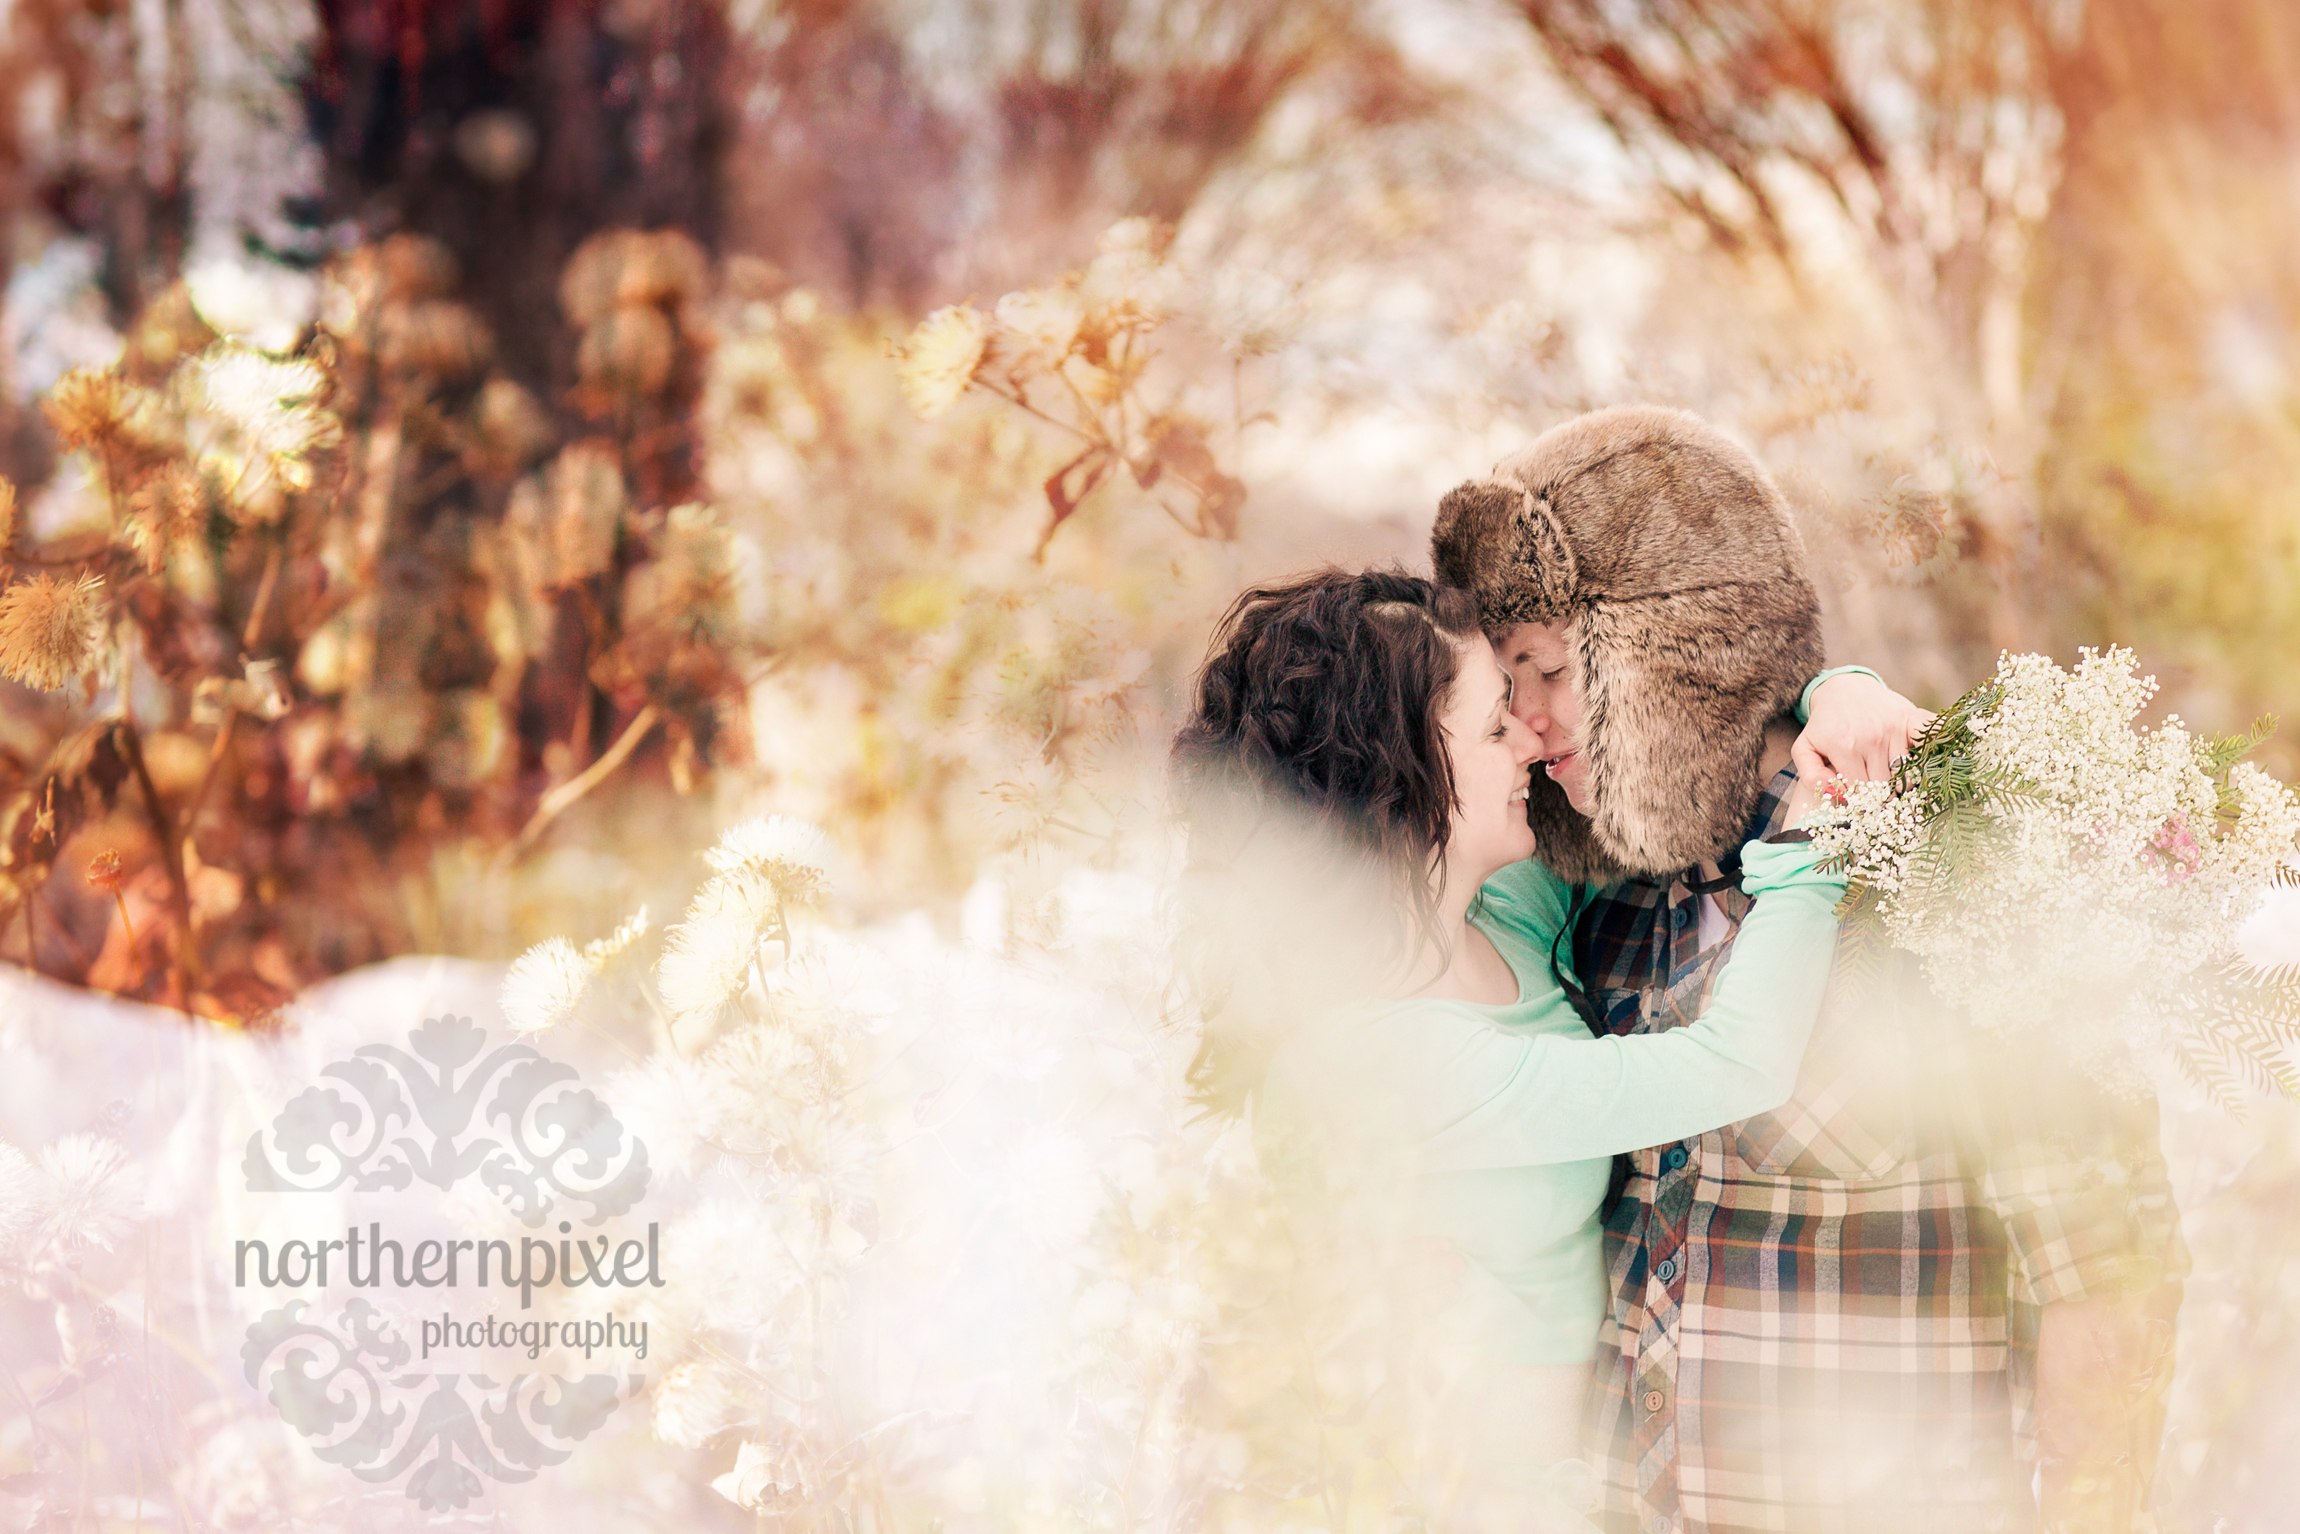 Jaclyn & Ethan's Winter Engagment